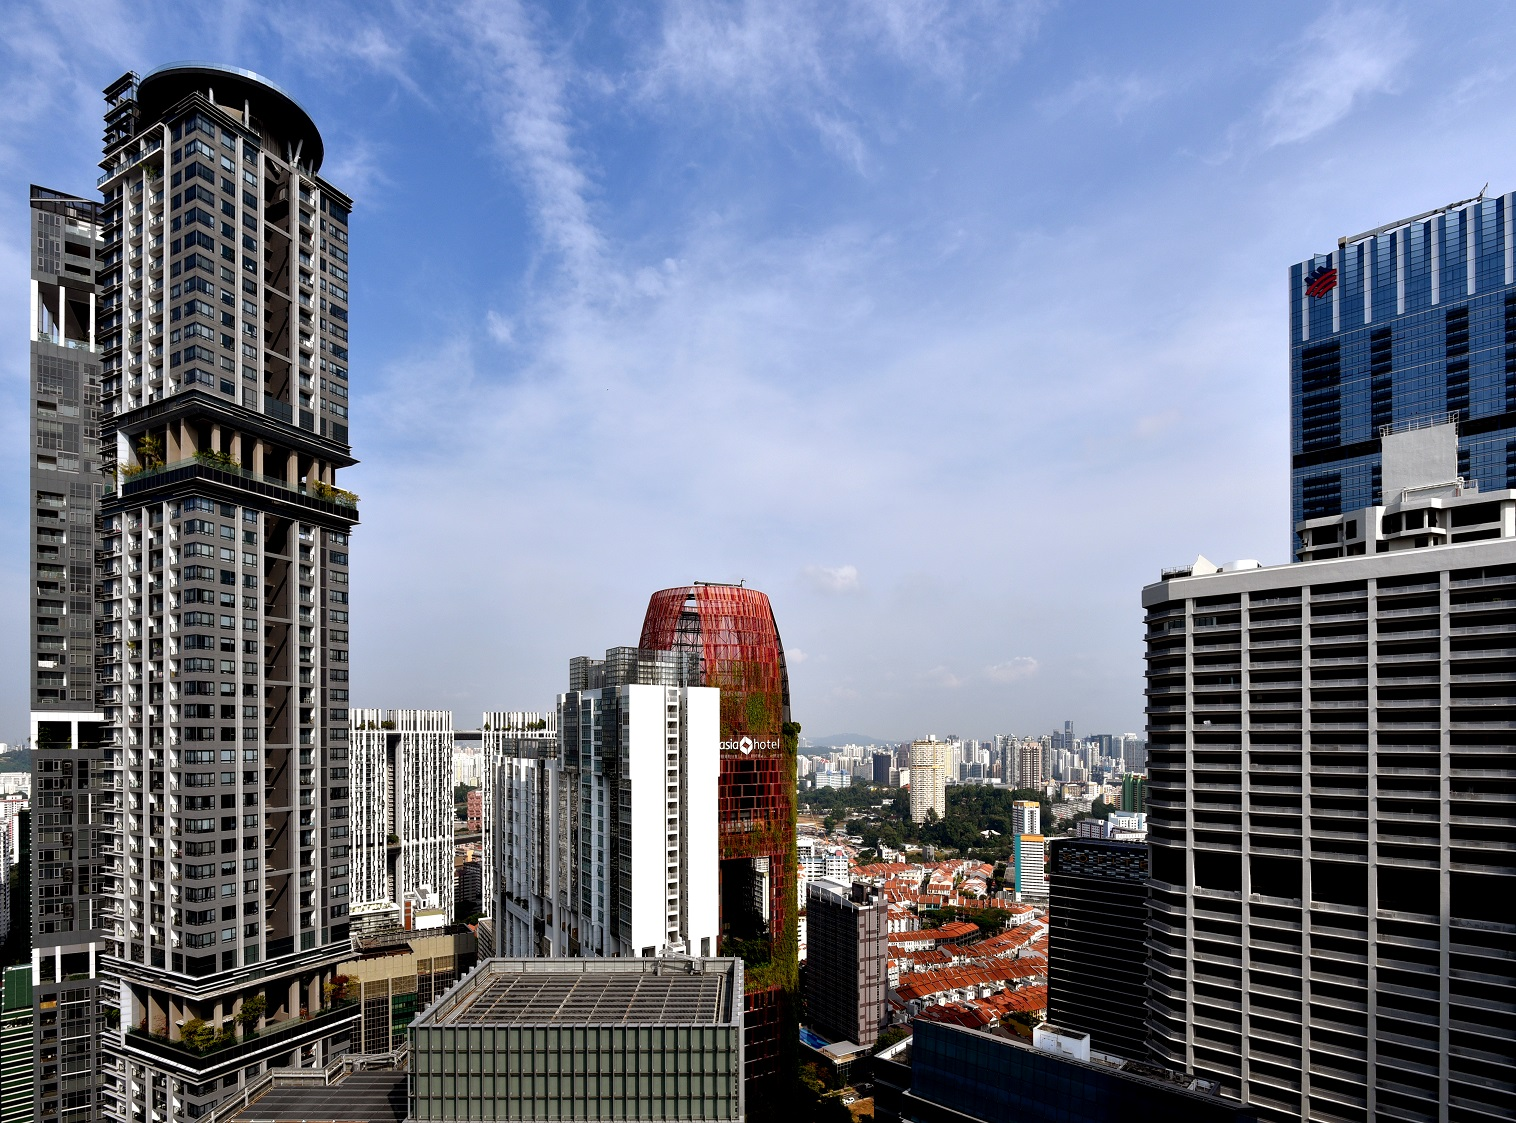 GLS BERNAM STREET - Nearby 99-year leasehold private residential properties in the Tanjong Pagar area that could have been used as references by bidders include Skysuites @ Anson and Altez (pictured on the left) [Photo: Samuel Isaac Chua/EdgeProp Singapore] - EDGEPROP SINGAPORE